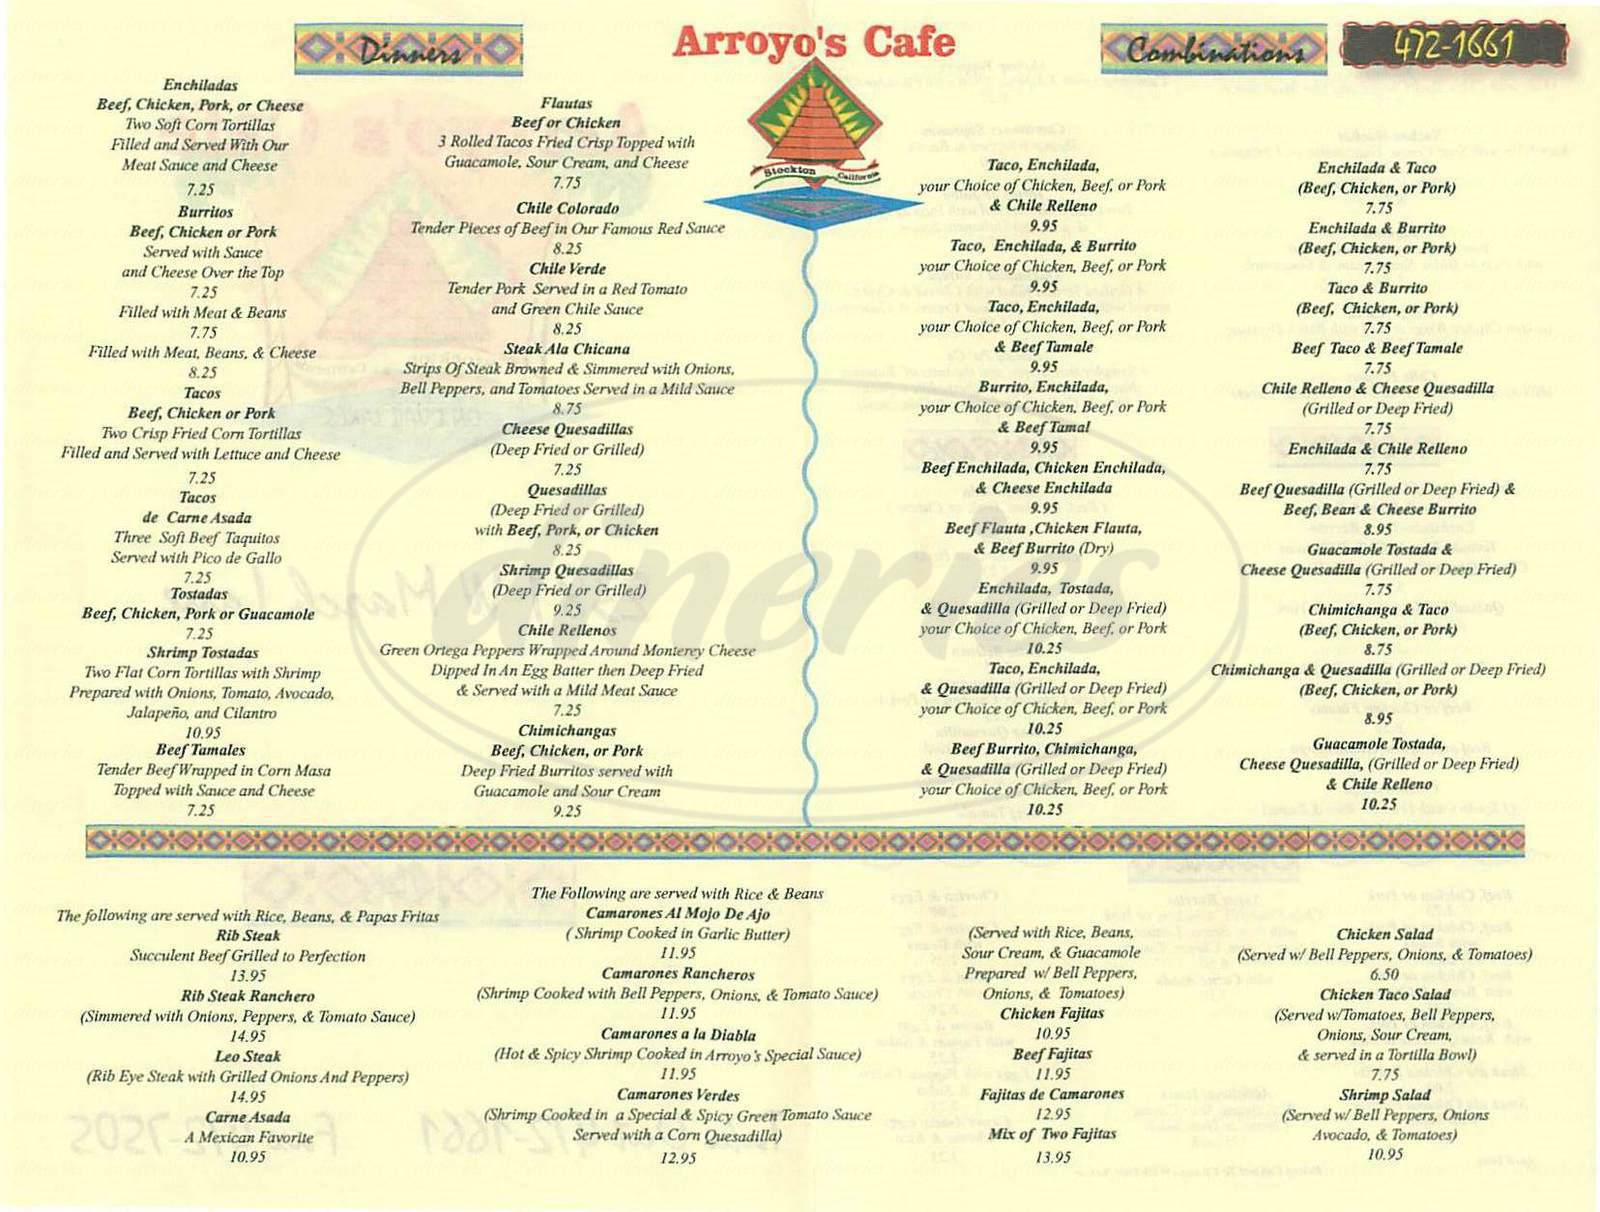 menu for Arroyo's Cafe